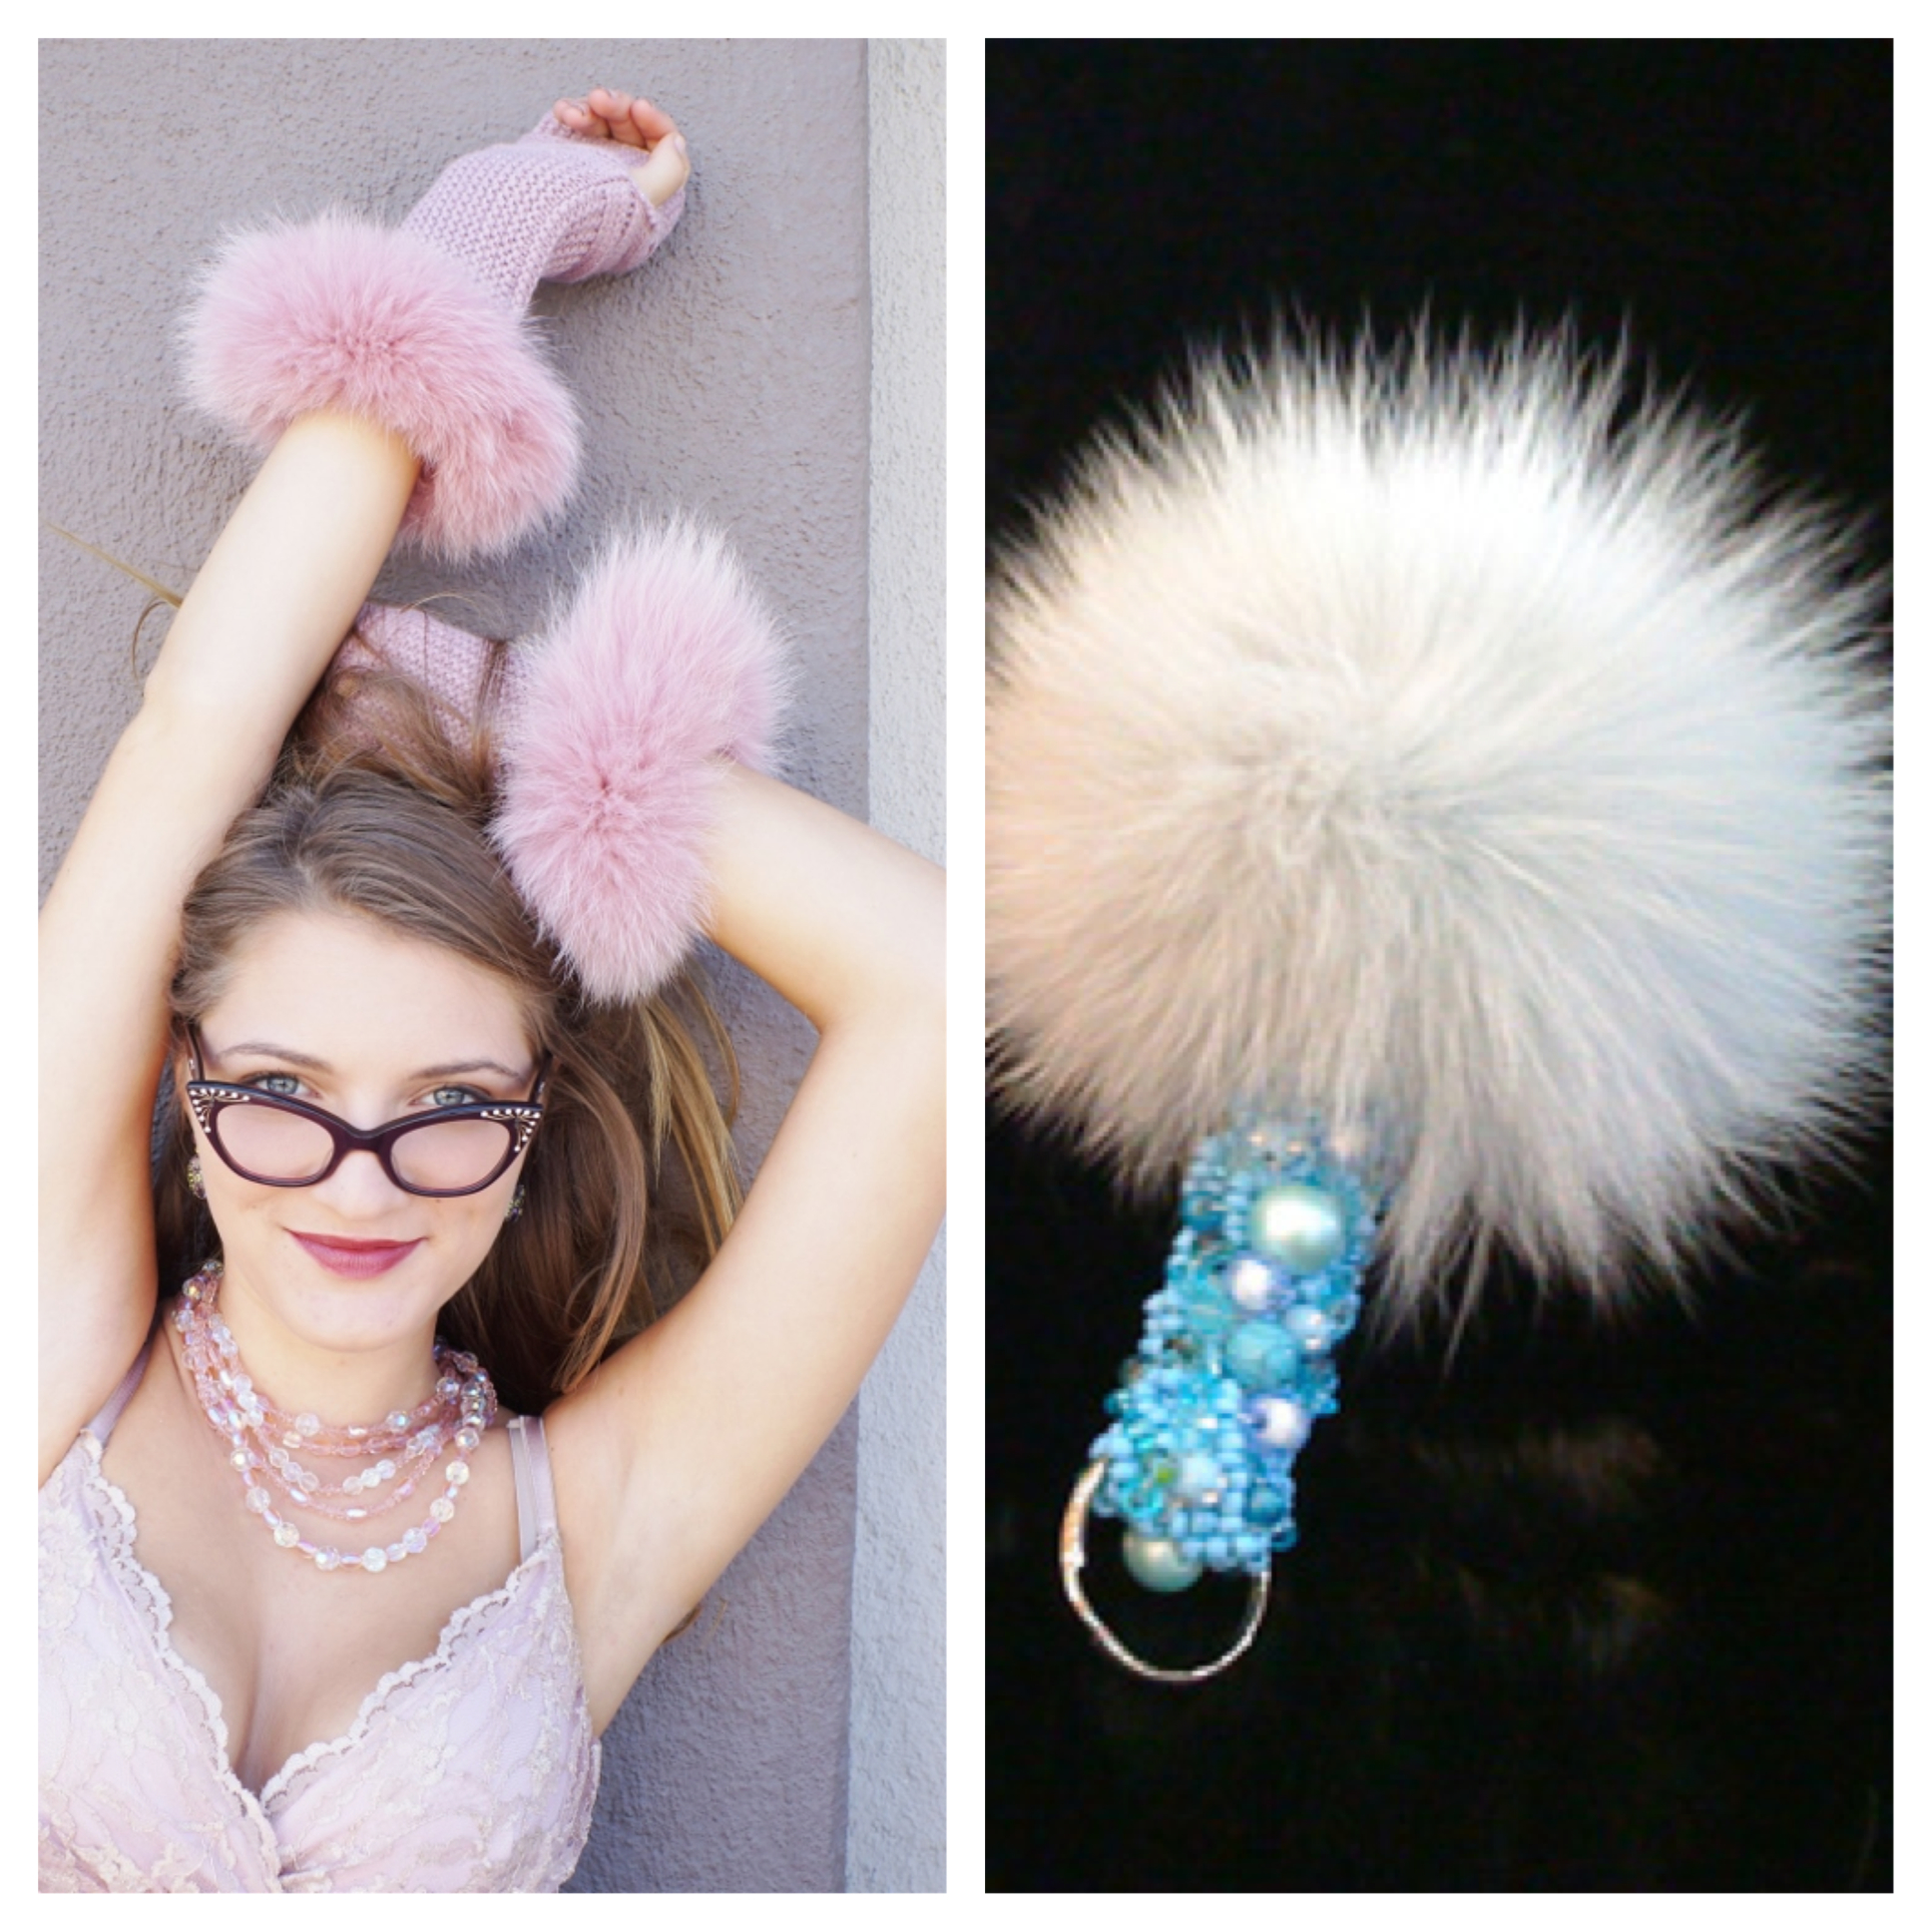 Rabbit trimmed gloves and a jeweled rabbit purse charm from Somper Furs